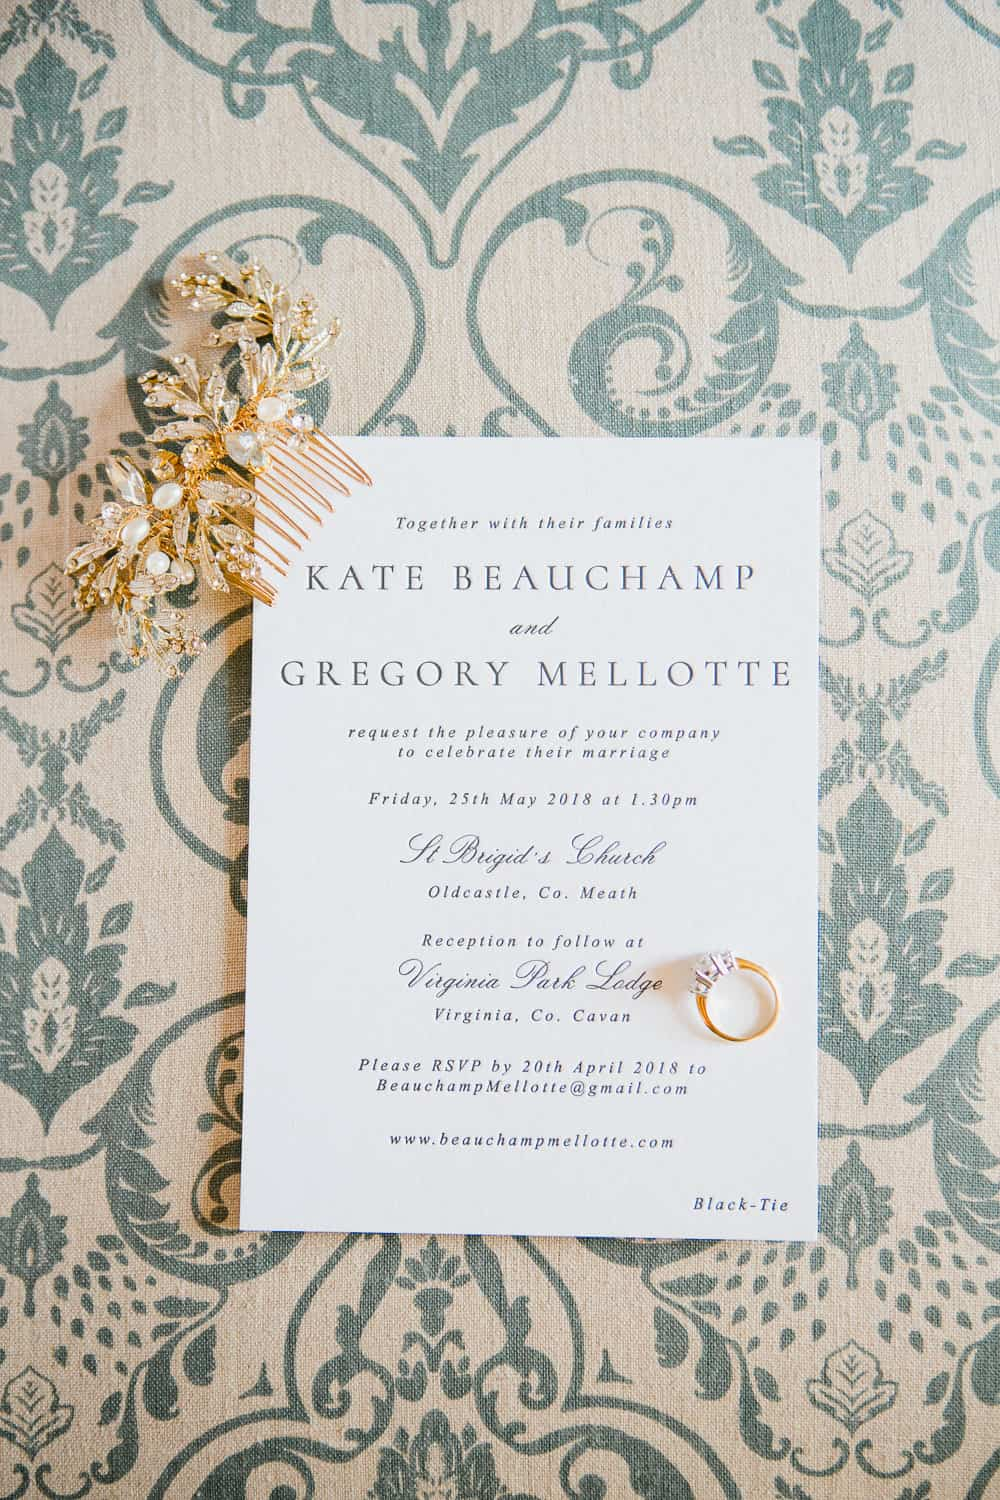 Letterpress Wedding Invitation for Virginia Park Lodge Wedding